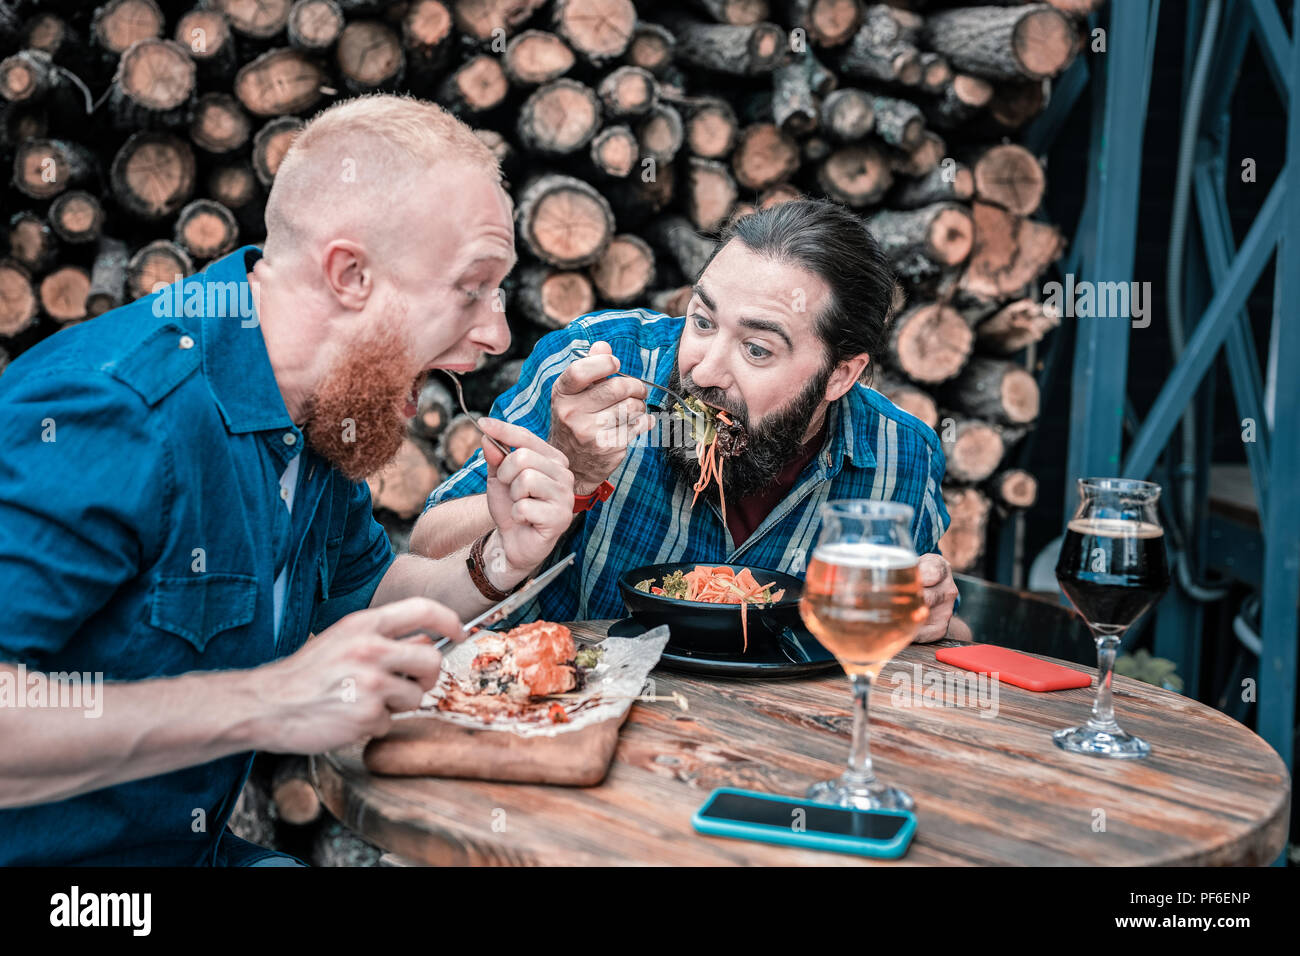 Two hungry men feeling good while having tasty dinner - Stock Image